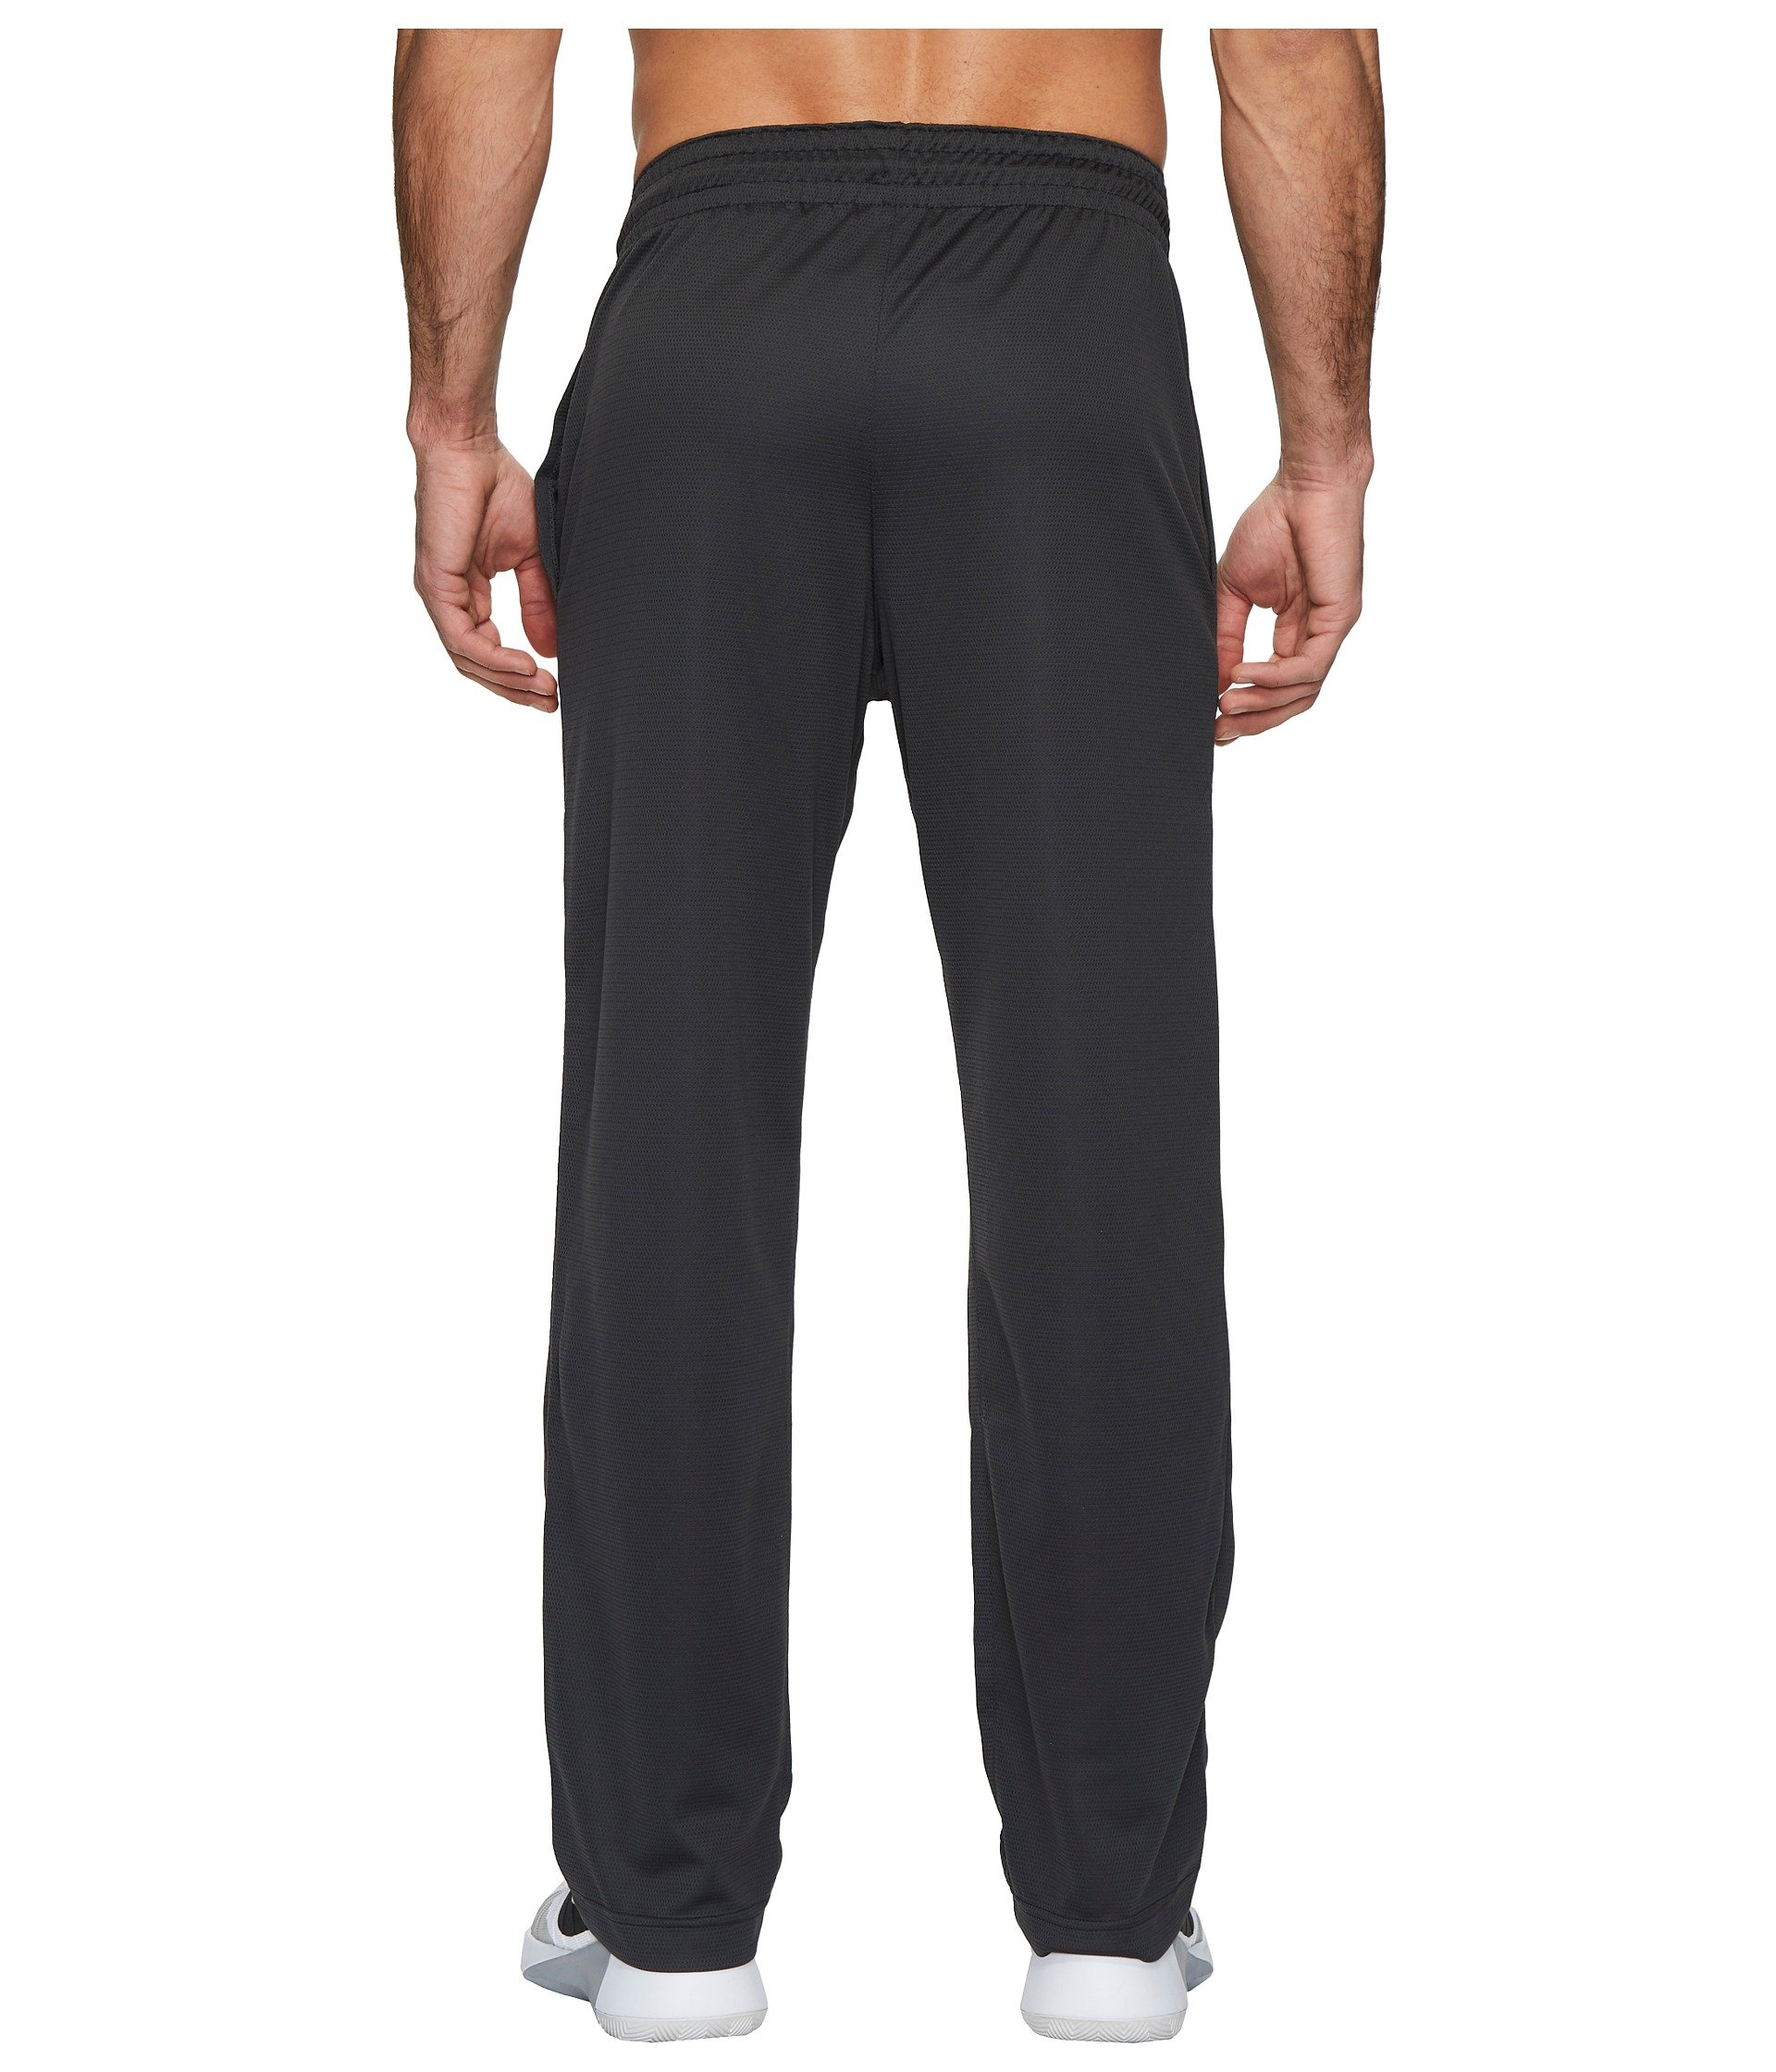 Rivalry Knit Dry Nike Basketball Pant black Anthracite ZwfHHx